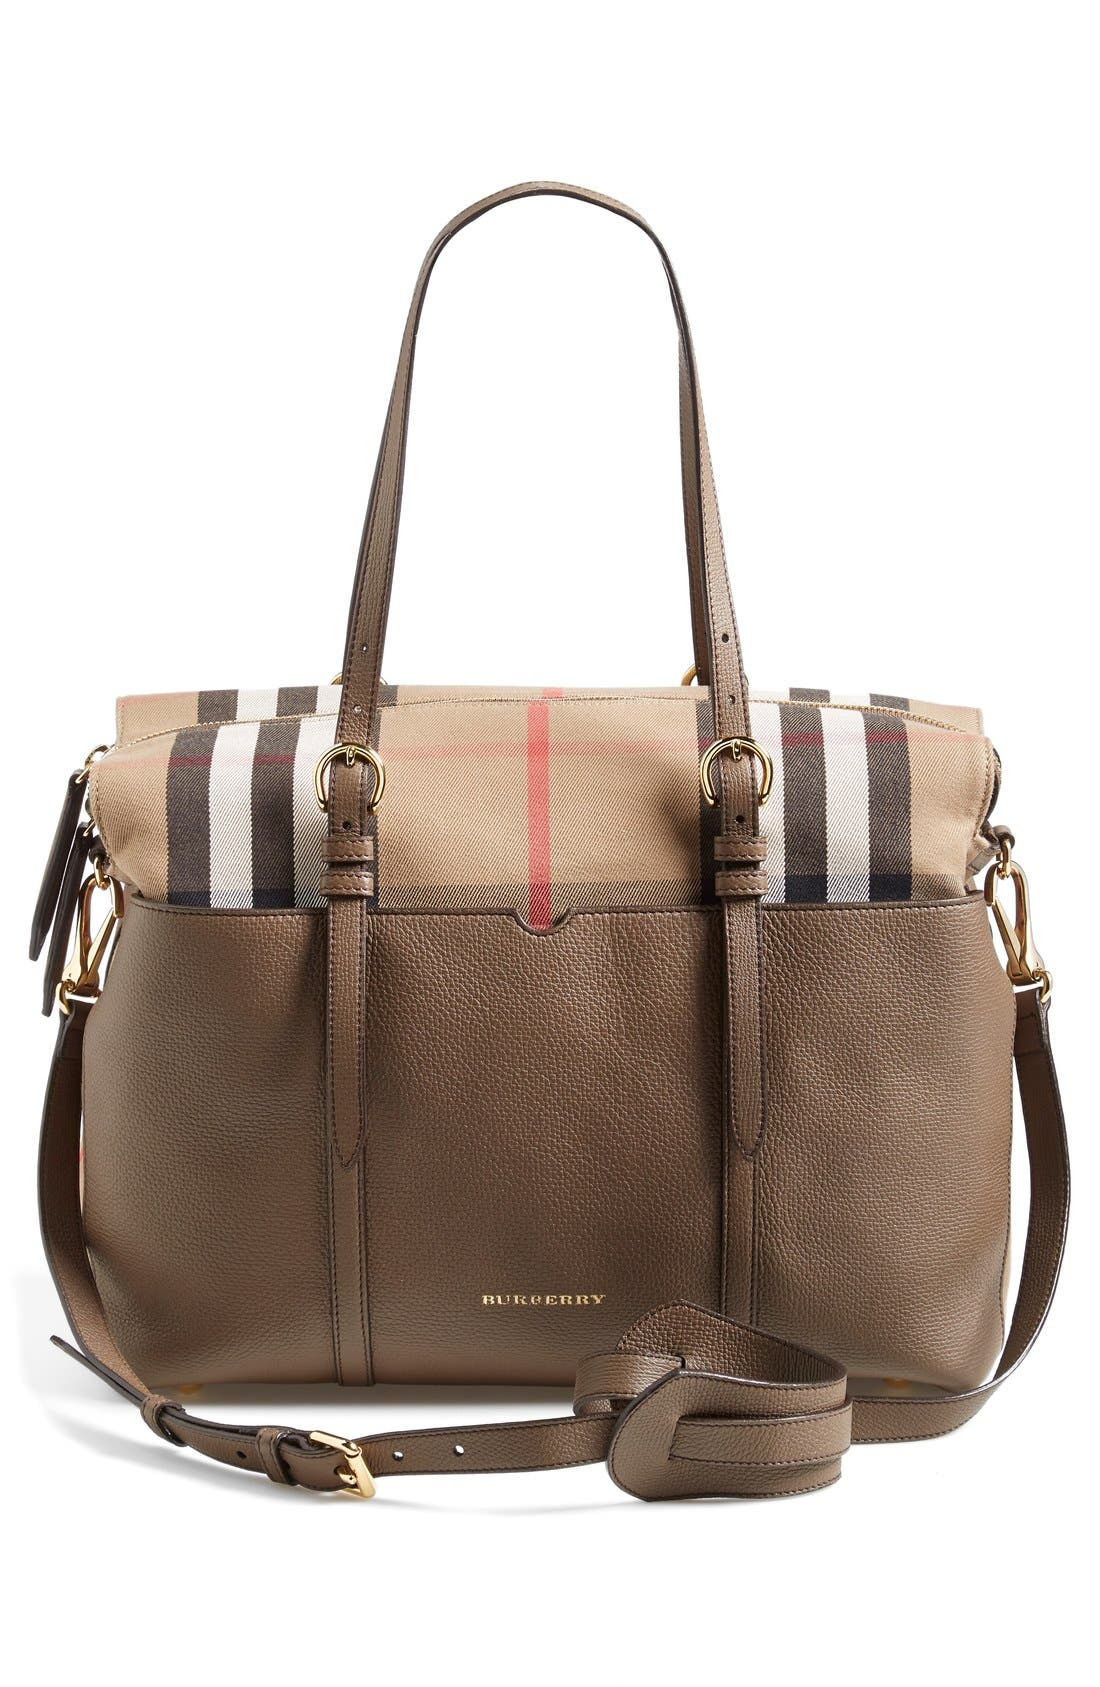 Burberry Classic Check & Leather Diaper Bag | Nordstrom